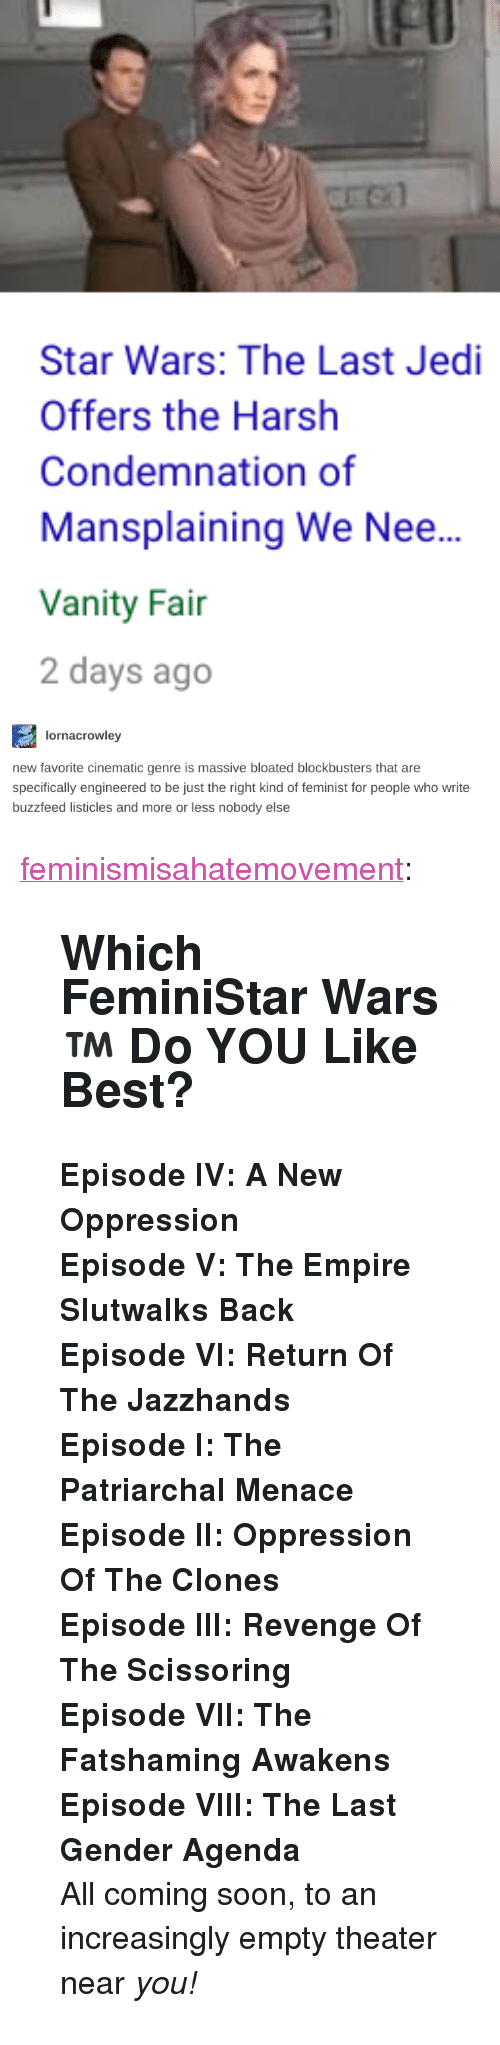 "scissoring: fl  Star Wars: The Last Jedi  Offers the Harsh  Condemnation of  Mansplaining We Nee...  Vanity Fai  2 days ago   lornacrowley  new favorite cinematic genre is massive bloated blockbusters that are  specifically engineered to be just the right kind of feminist for people who write  buzzfeed listicles and more or less nobody else <p><a href=""http://feminismisahatemovement.tumblr.com/post/168692515648/which-feministar-wars-do-you-like-best"" class=""tumblr_blog"">feminismisahatemovement</a>:</p>  <blockquote><h2><b>Which FeminiStar Wars™   Do YOU Like Best?<br/></b></h2><p><b>Episode IV: A New Oppression</b></p><p><b>Episode V: The Empire Slutwalks Back</b></p><p><b>Episode VI: Return Of The Jazzhands</b></p><p><b>Episode I: The Patriarchal Menace</b></p><p><b>Episode II: Oppression Of The Clones<br/></b></p><p><b>Episode III: Revenge Of The Scissoring</b></p><p><b>Episode VII: The Fatshaming Awakens</b></p><p><b>Episode VIII: The Last Gender Agenda<br/></b></p><p>All coming soon, to an increasingly empty theater near <i>you!</i><br/></p></blockquote>"